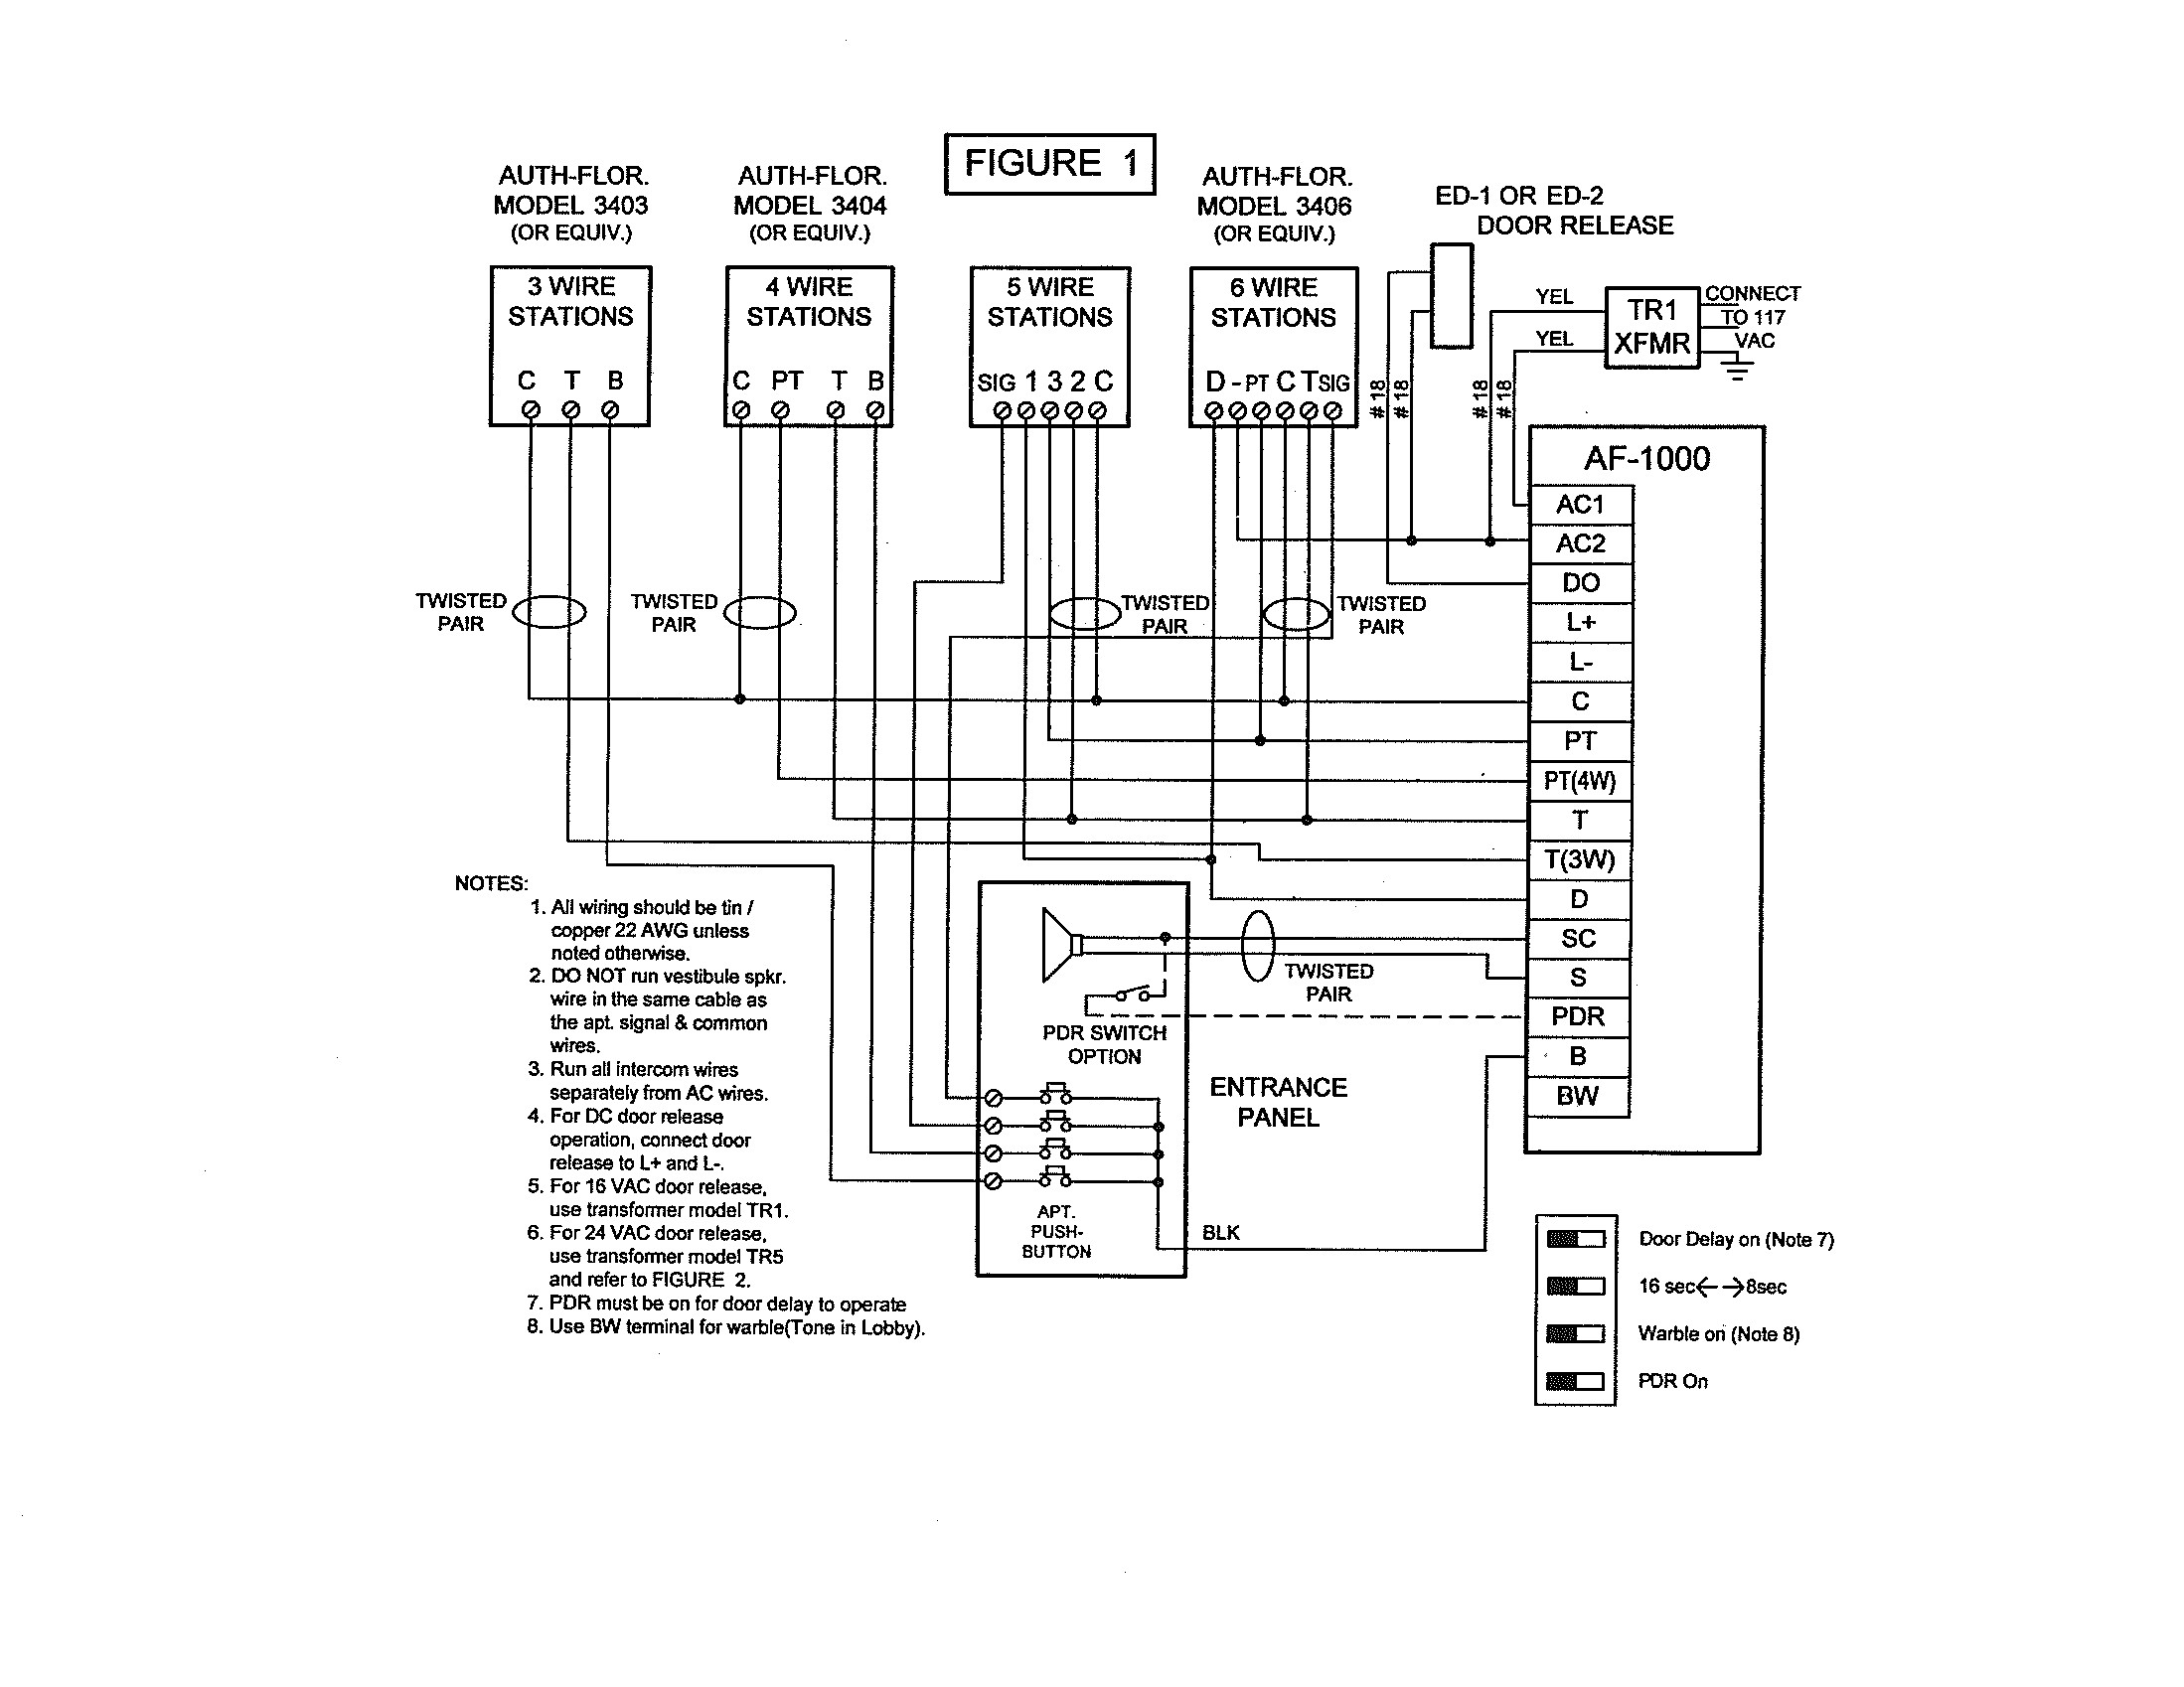 pacific electronics 3404 4 wire plastic intercom station rh leedan com apartment wiring line diagrams Wiring Diagram Symbols